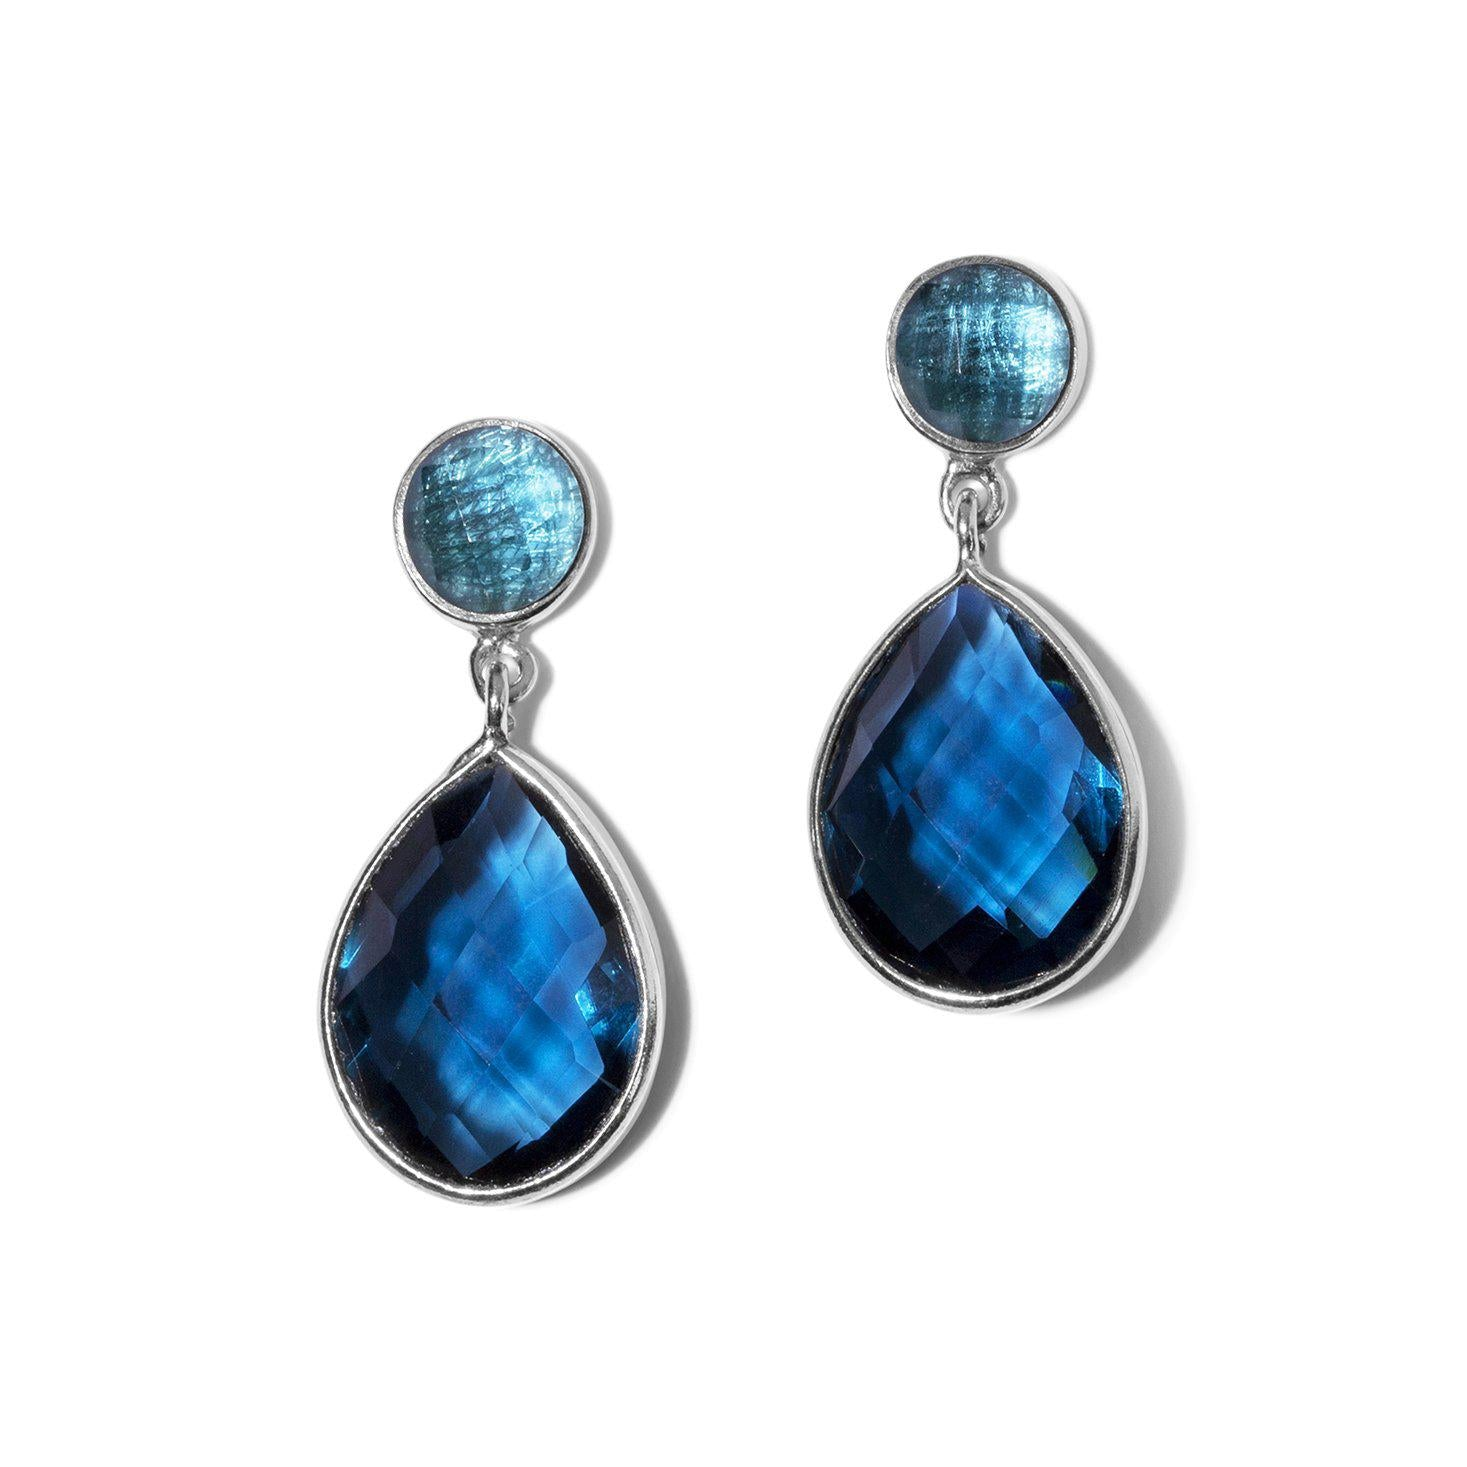 Tear & Round Stone Earrings in Silver-Black Betty Jewellery Design, South Africa